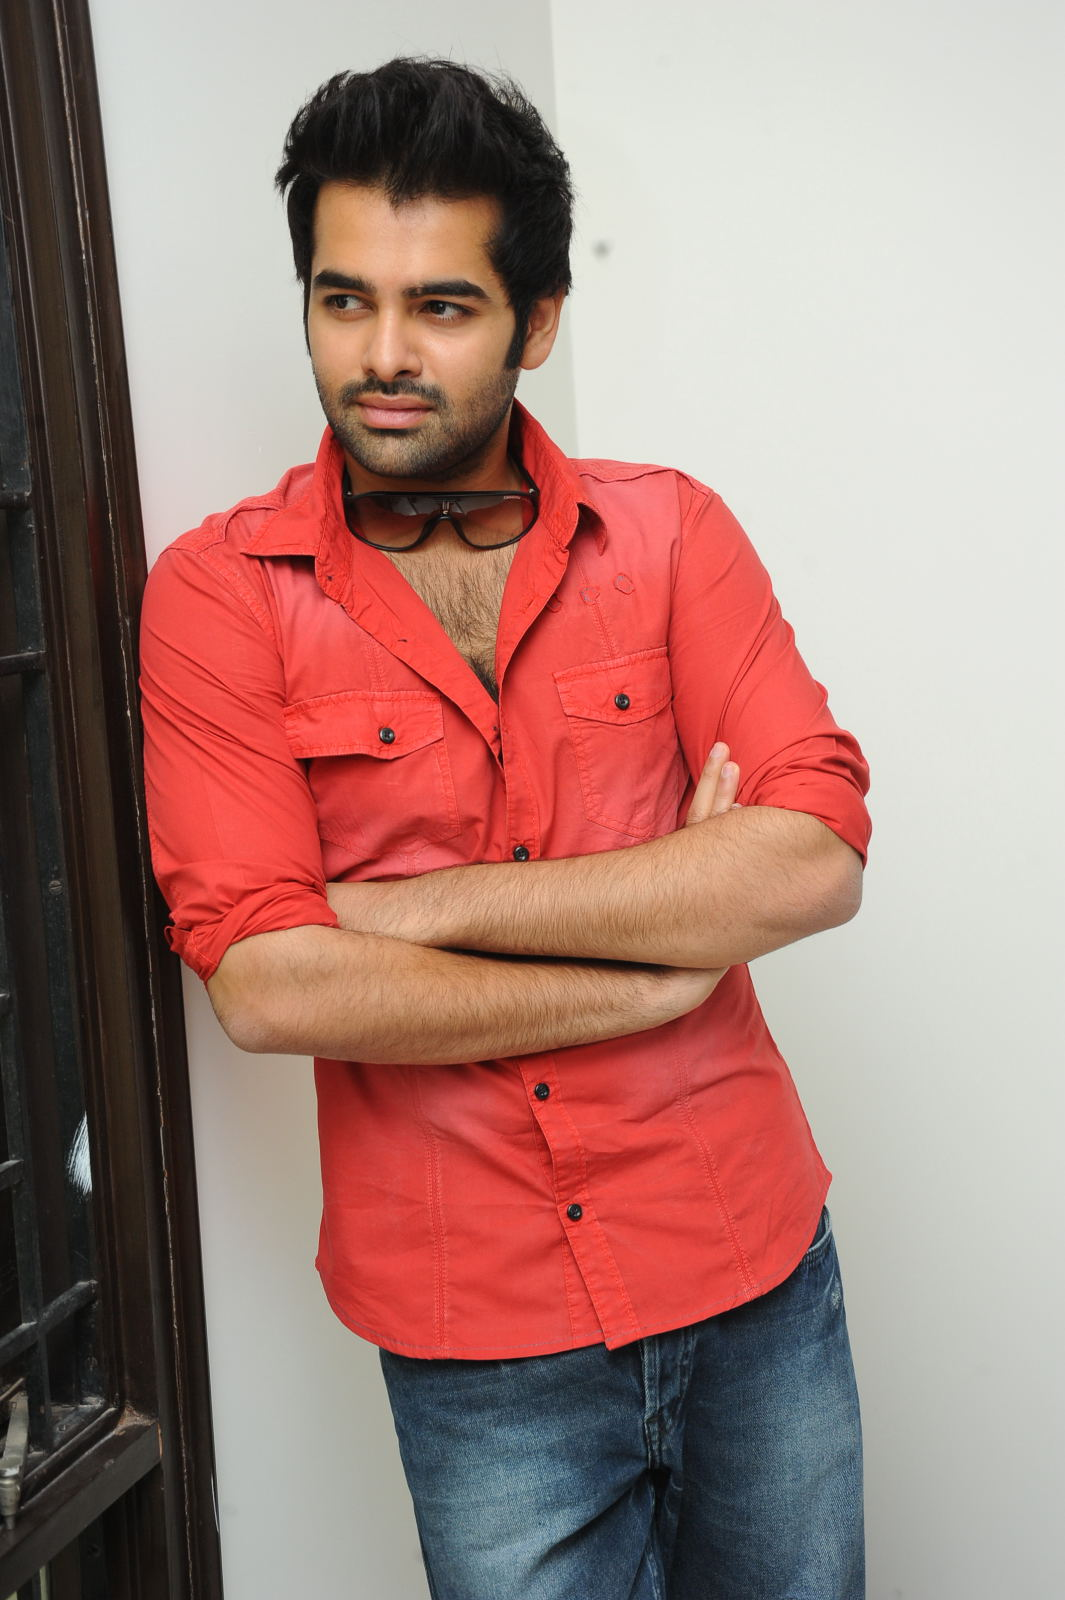 Ram New Pics Tollywoodtolly